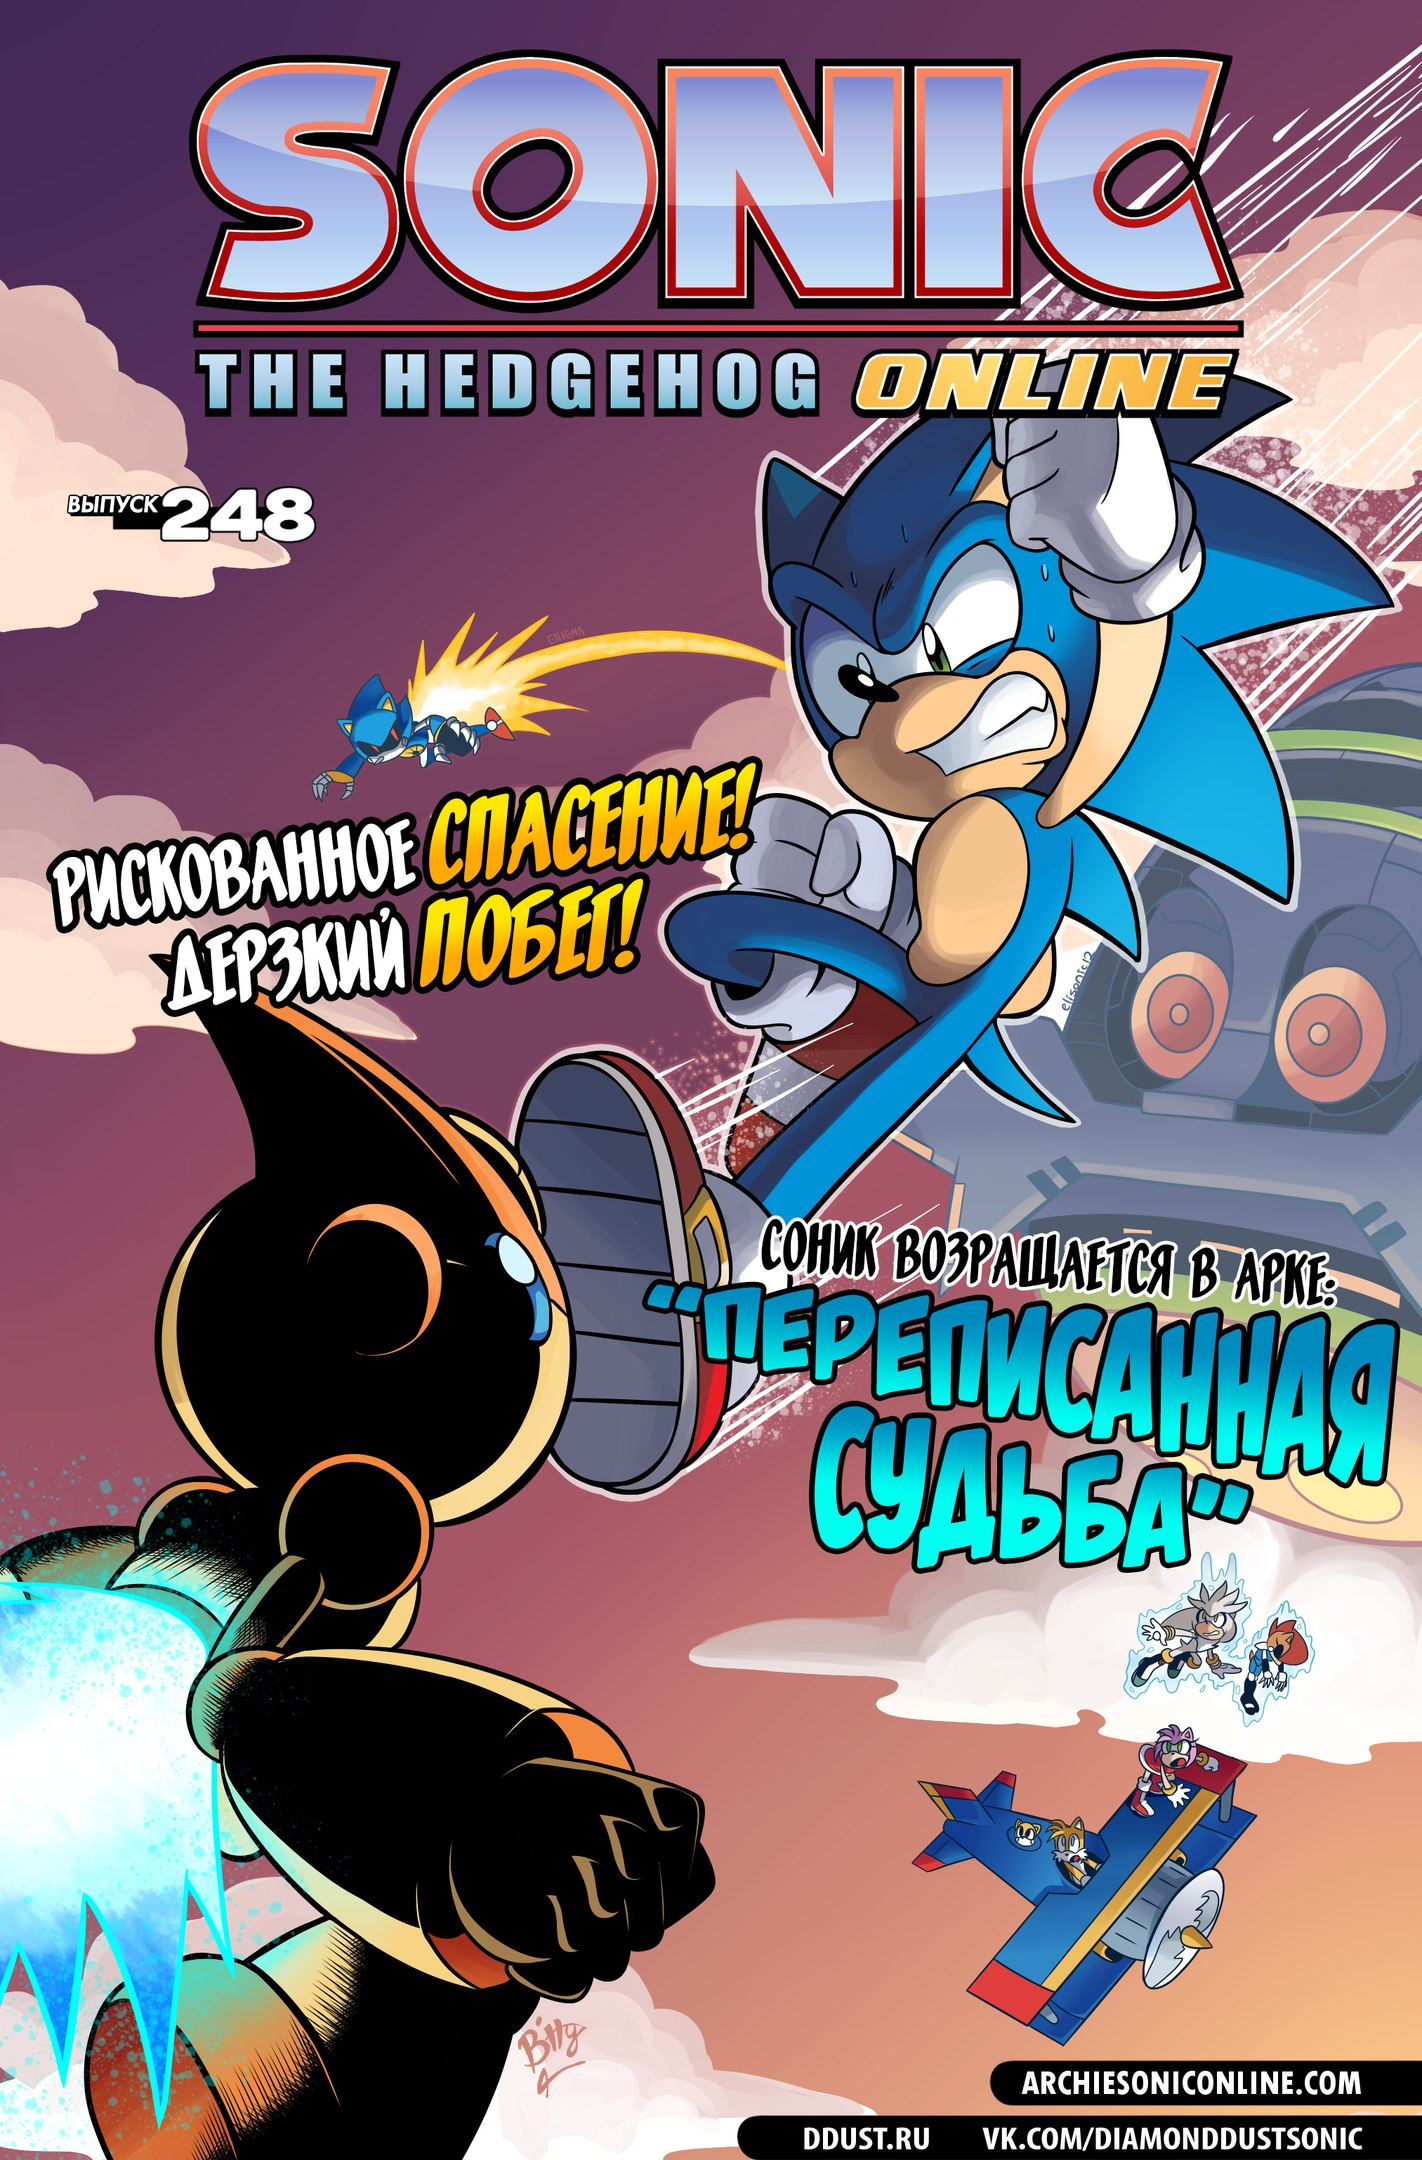 Sonic the Hedgehog Online #248 – Cover – Russian